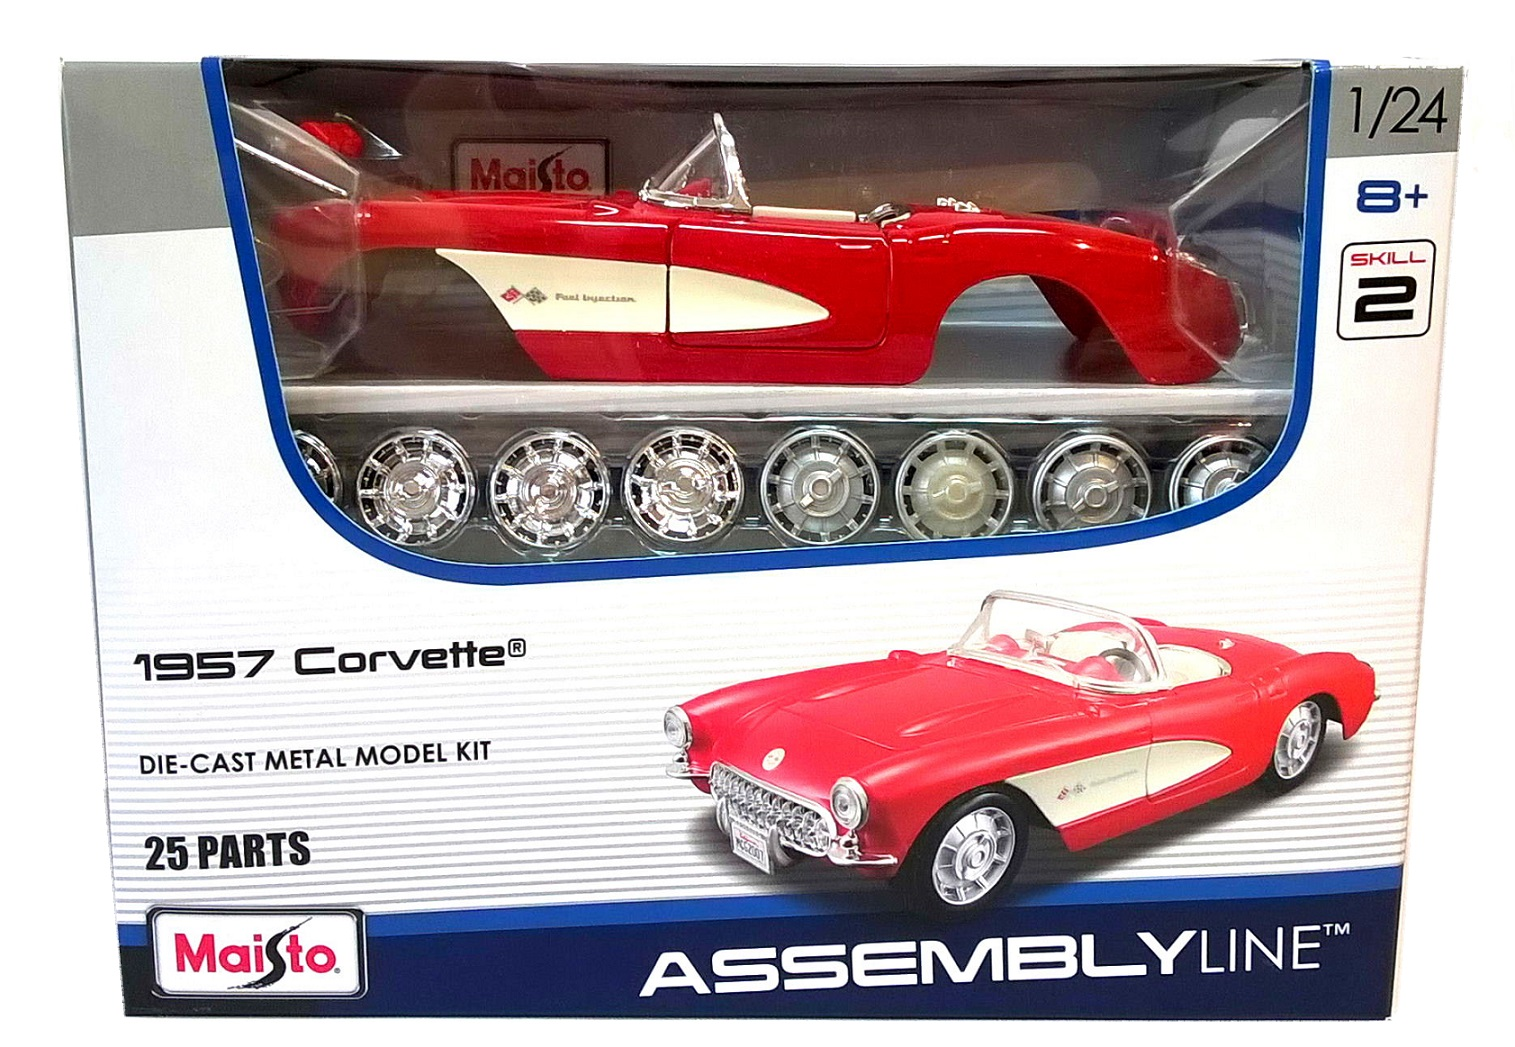 1957 CORVETTE - 1:24 Scale Die-Cast Classic American Car Model Kit Maisto